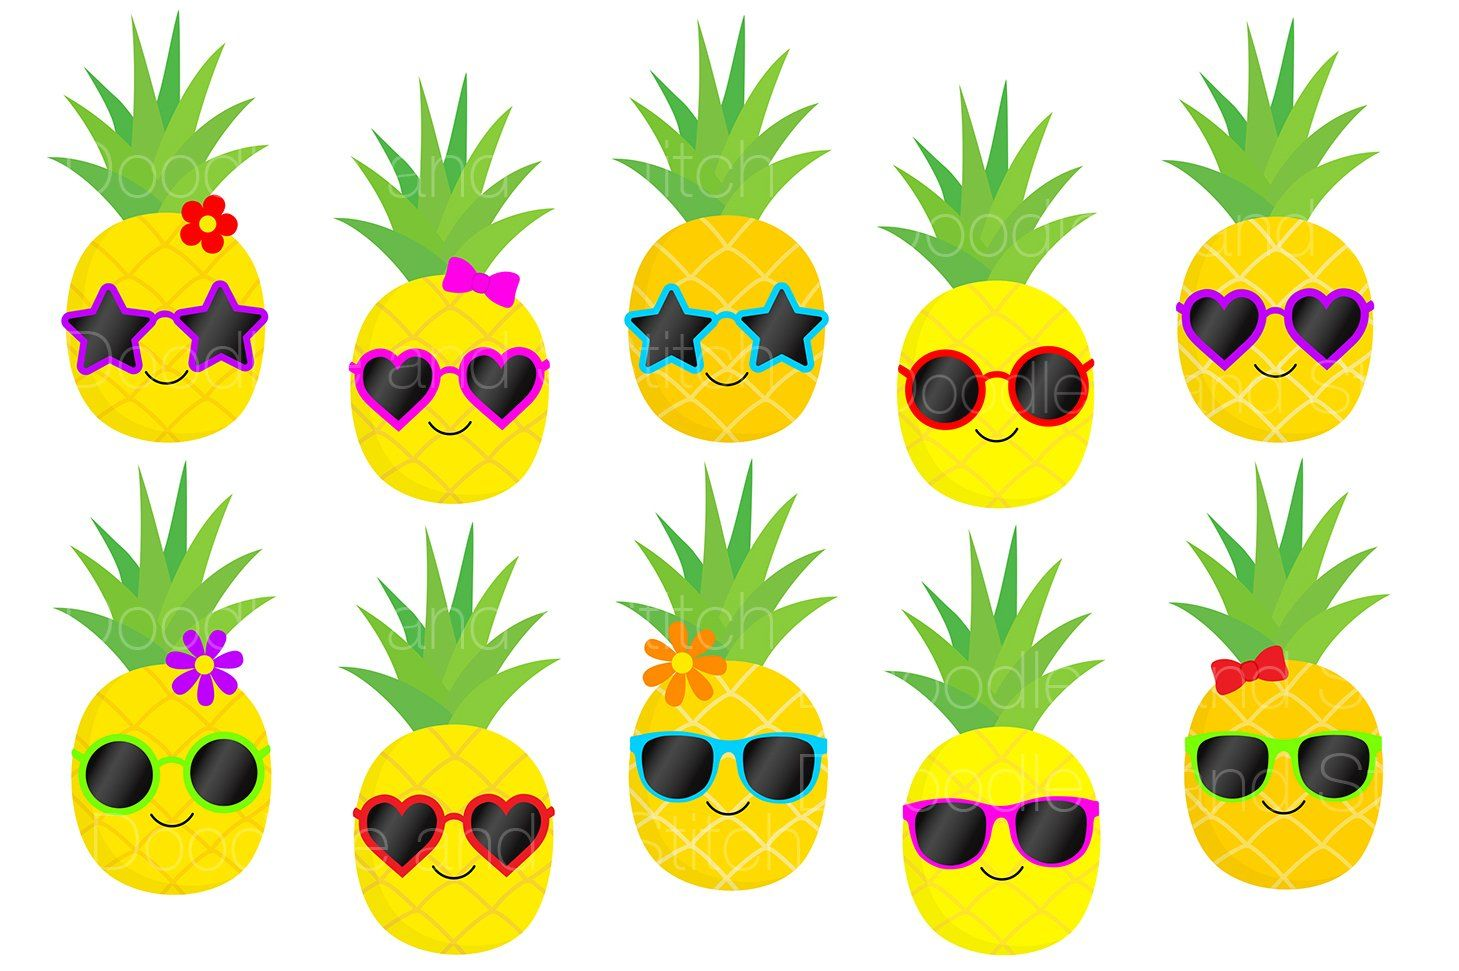 Funky Pineapple Clipart Designs   Pineapple clipart ...